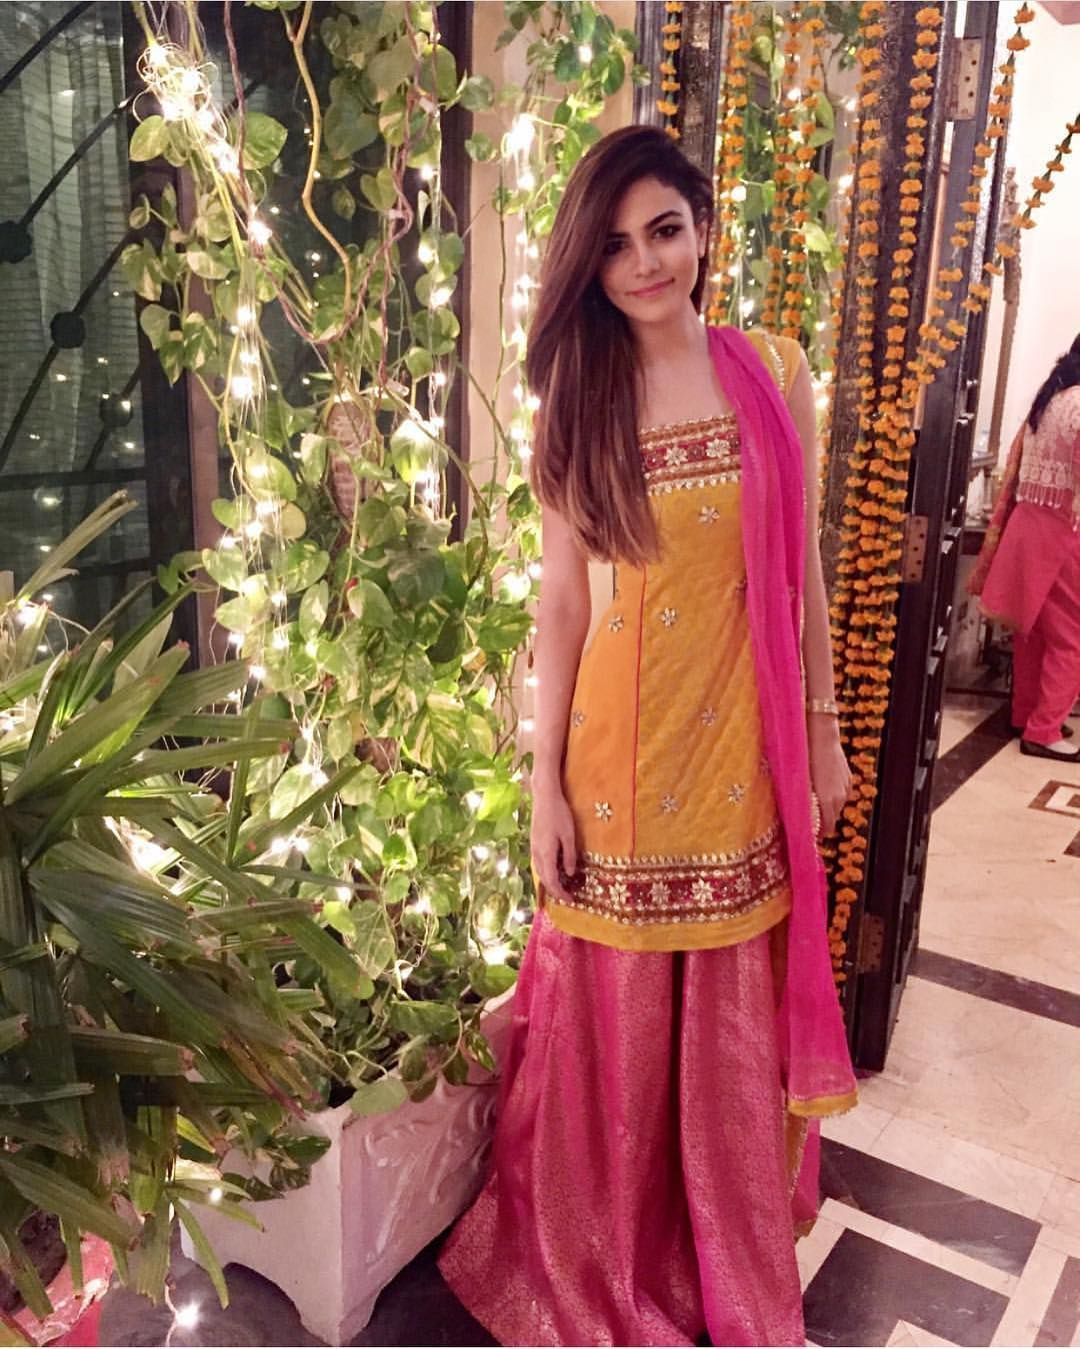 Pin by Chand Gee on Girl in 2019 | Pakistani dresses, Mehndi